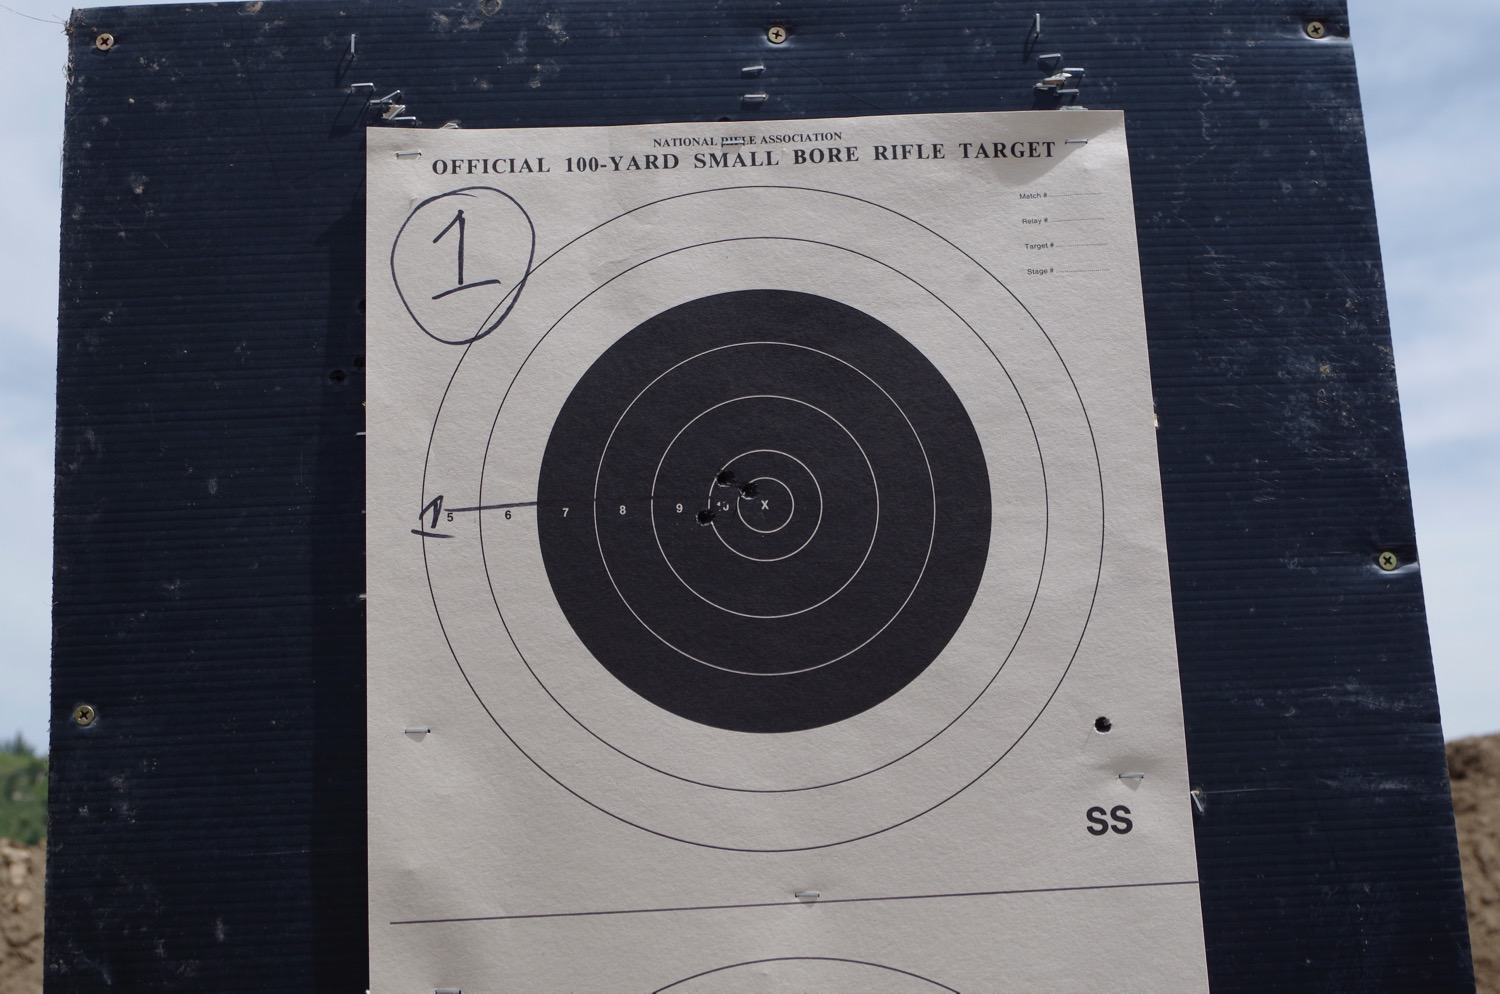 .308 Win Sight-In after a whopping 9 rounds total